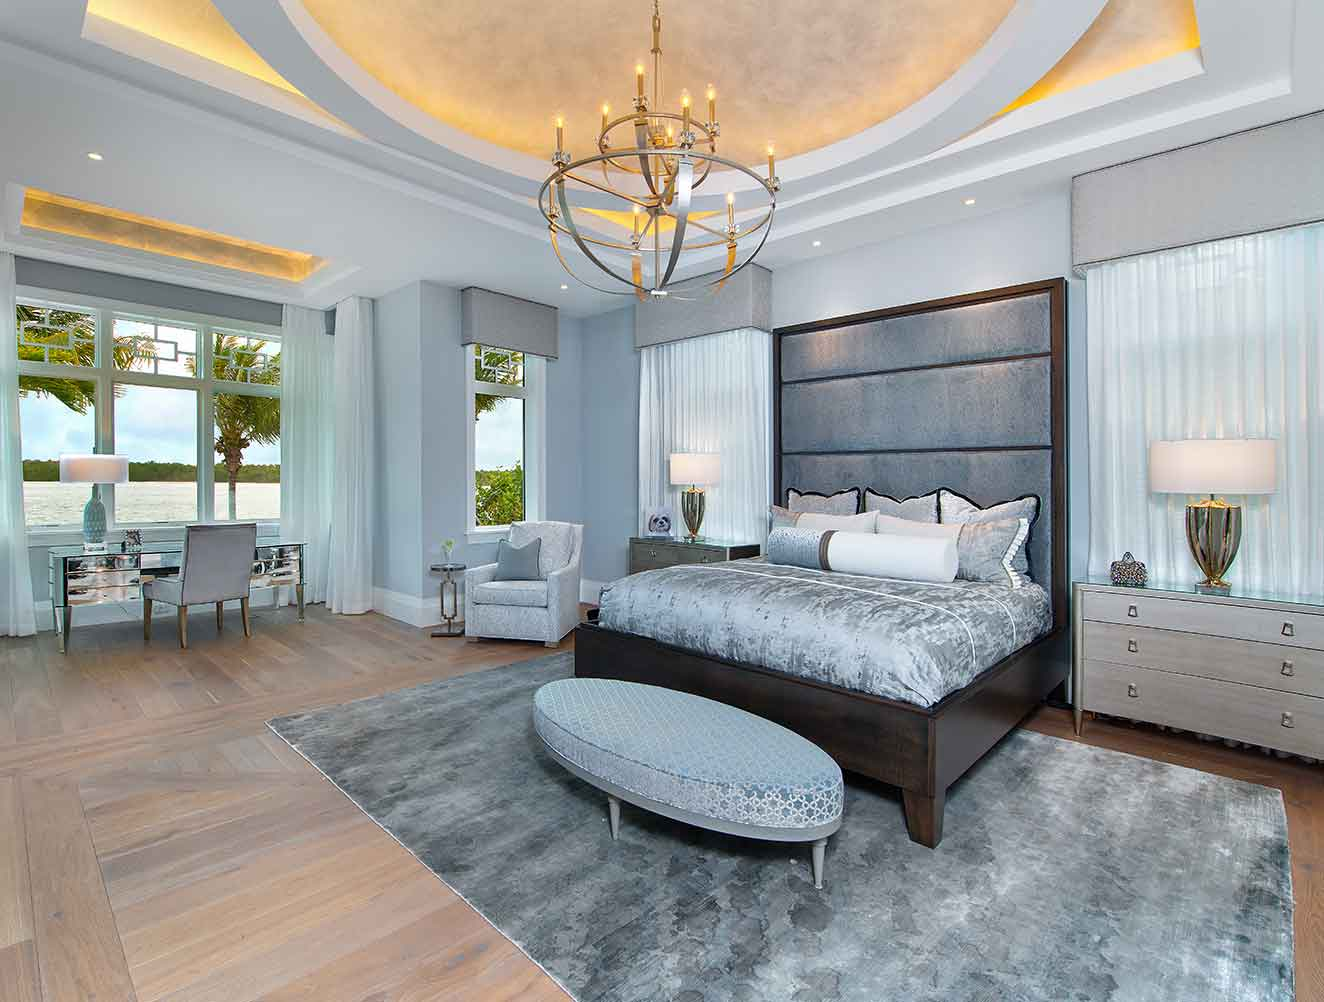 Master Bedroom of Galleon Estate in Naples Florida, single family home designed by Kukk Architecture & Design Naples Architecture Firm